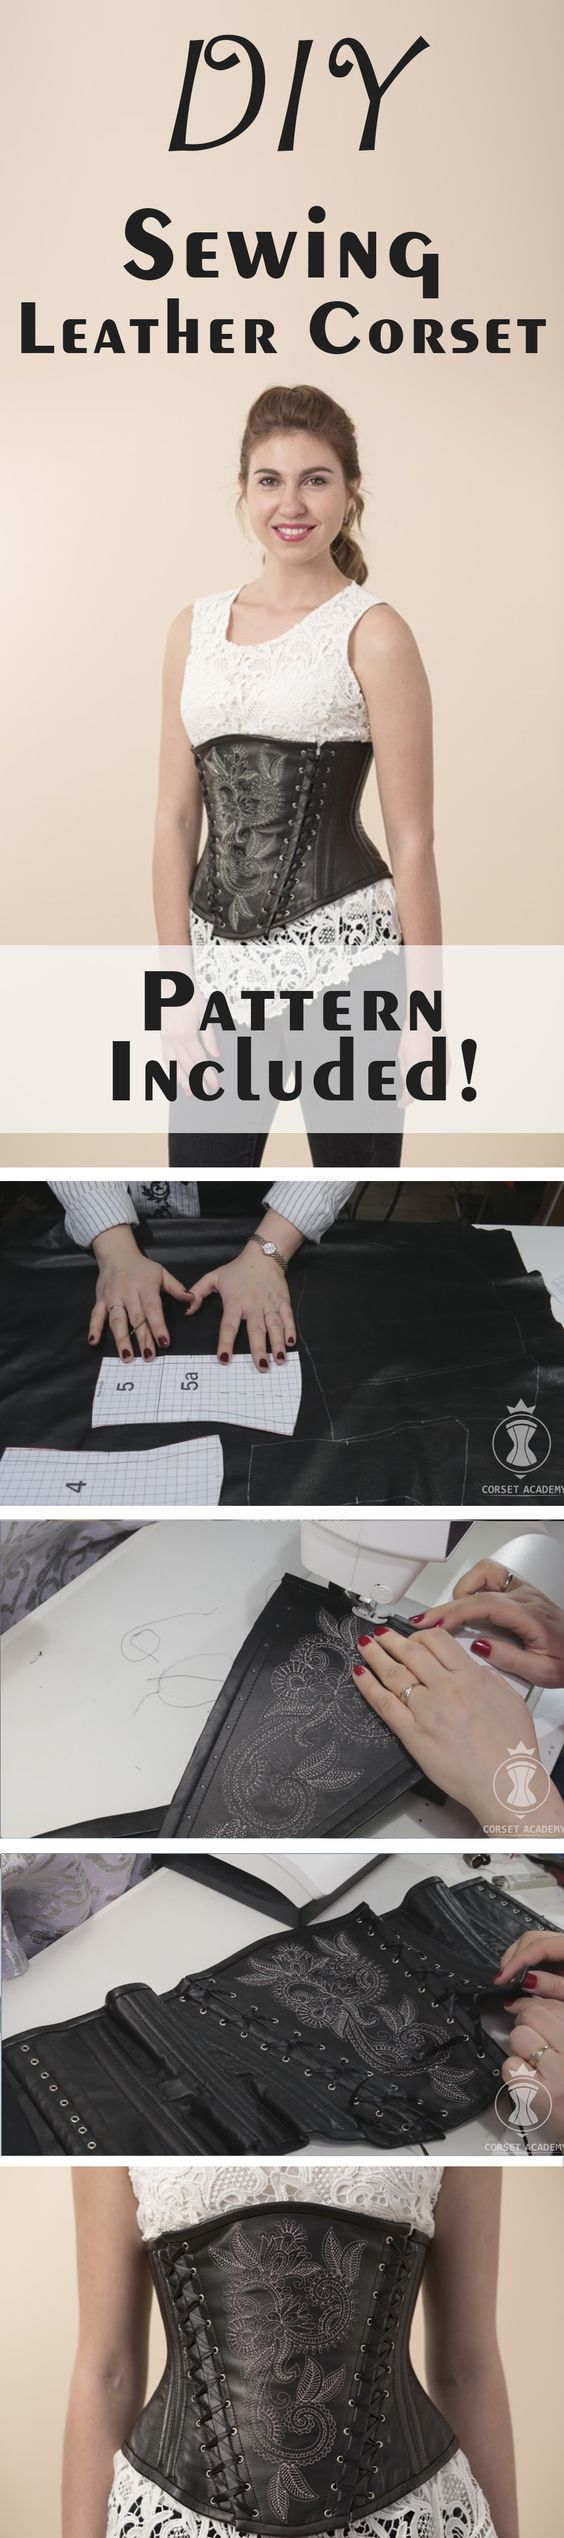 DIY Sewing Leather Corset.